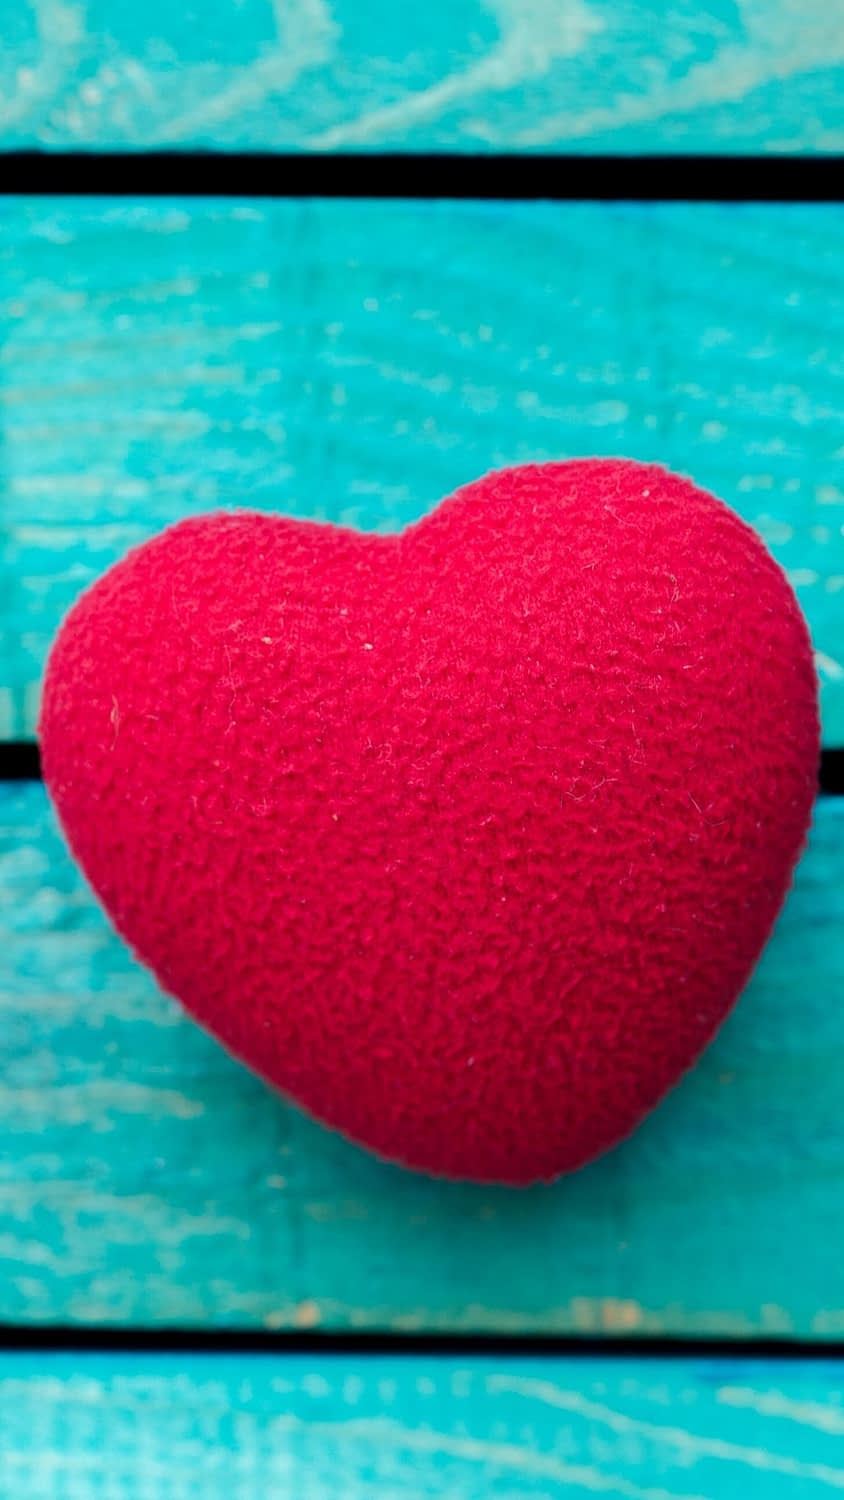 Teal background with a Heart for Valentines Day Iphone Wallpaper